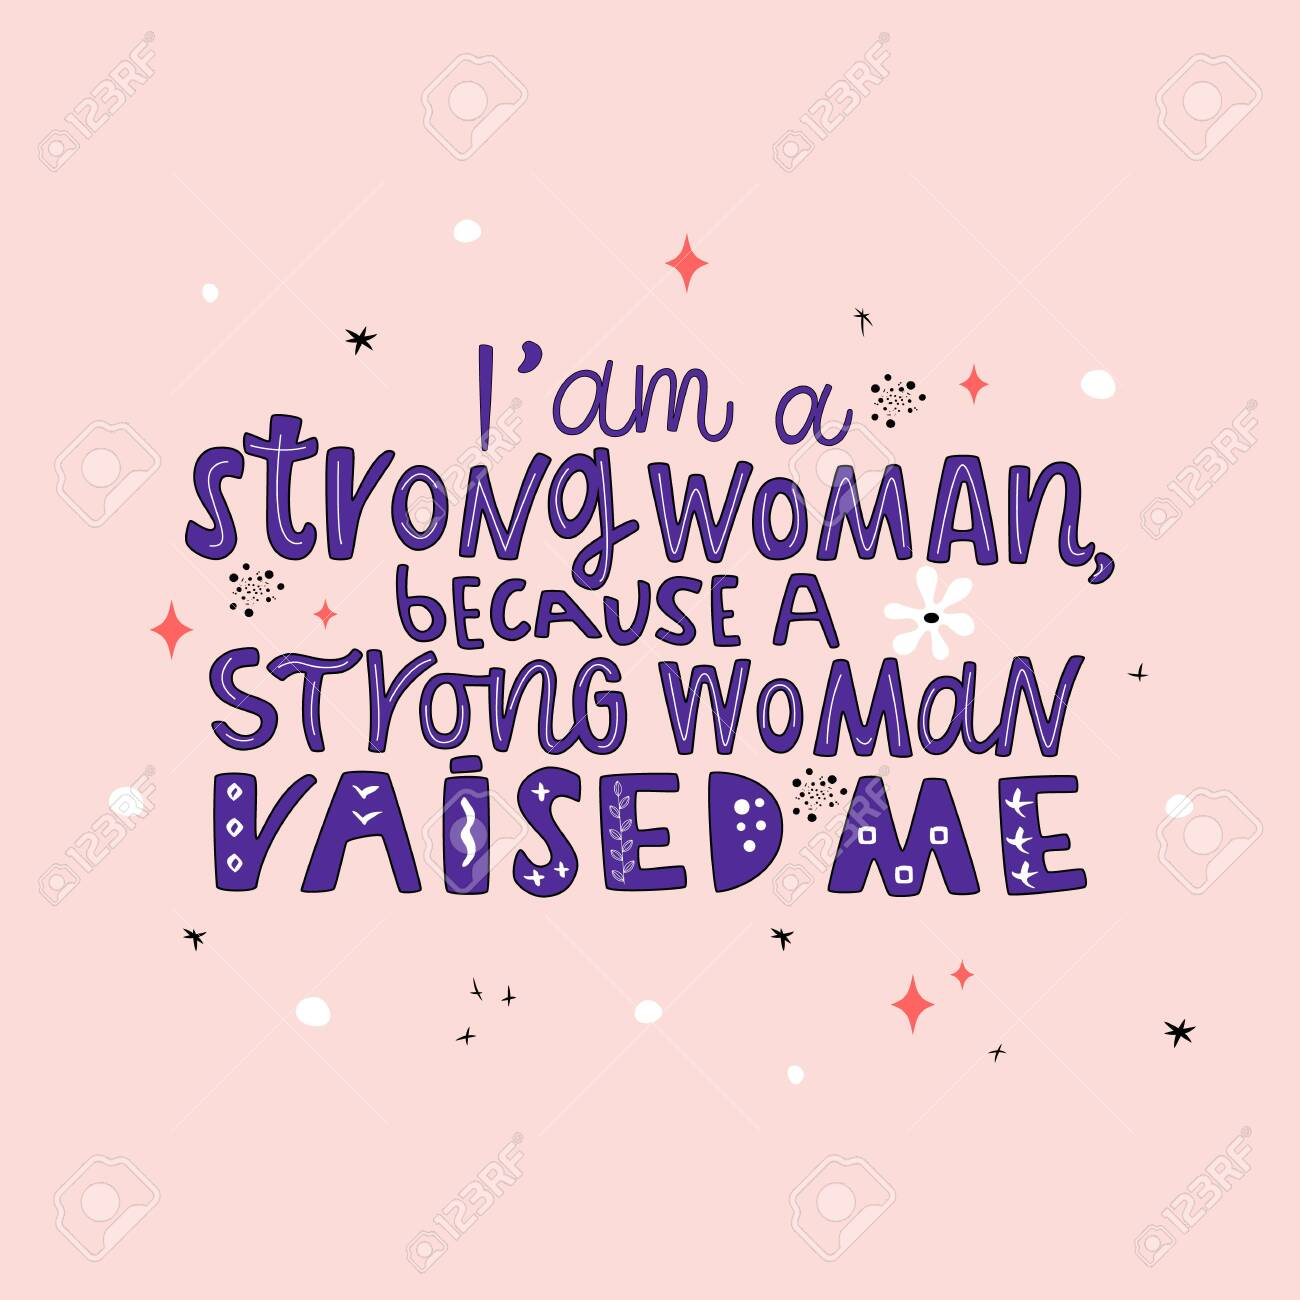 I am a strong woman, because a strong woman raised me hand drawn vector lettering. Positive motivational handwritten quote. Trendy modern style.T shirt print design - 148840386